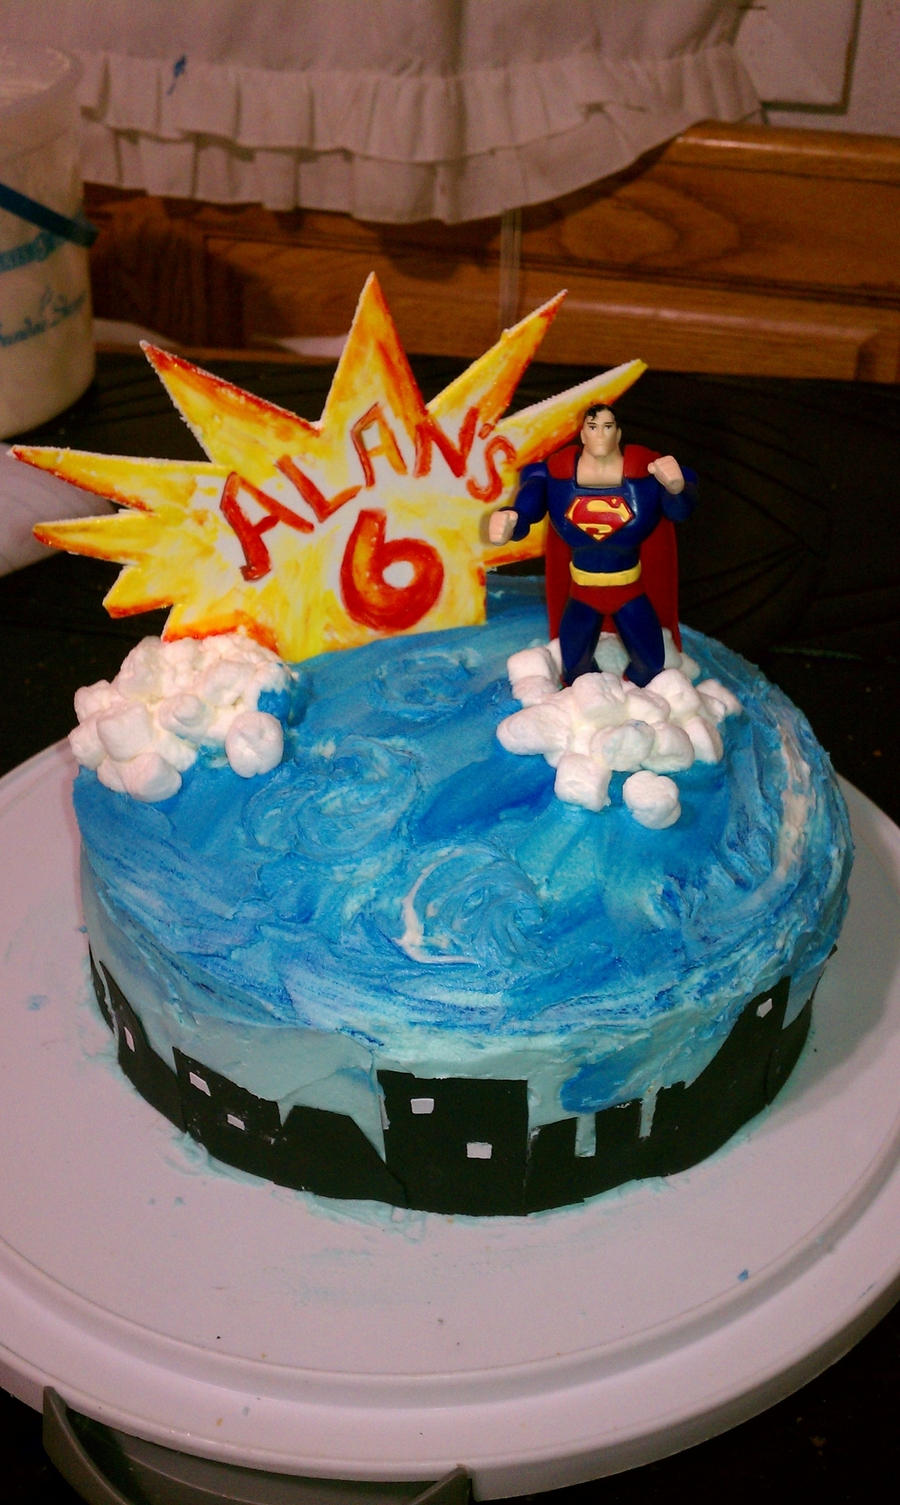 Superkid on Cake Central